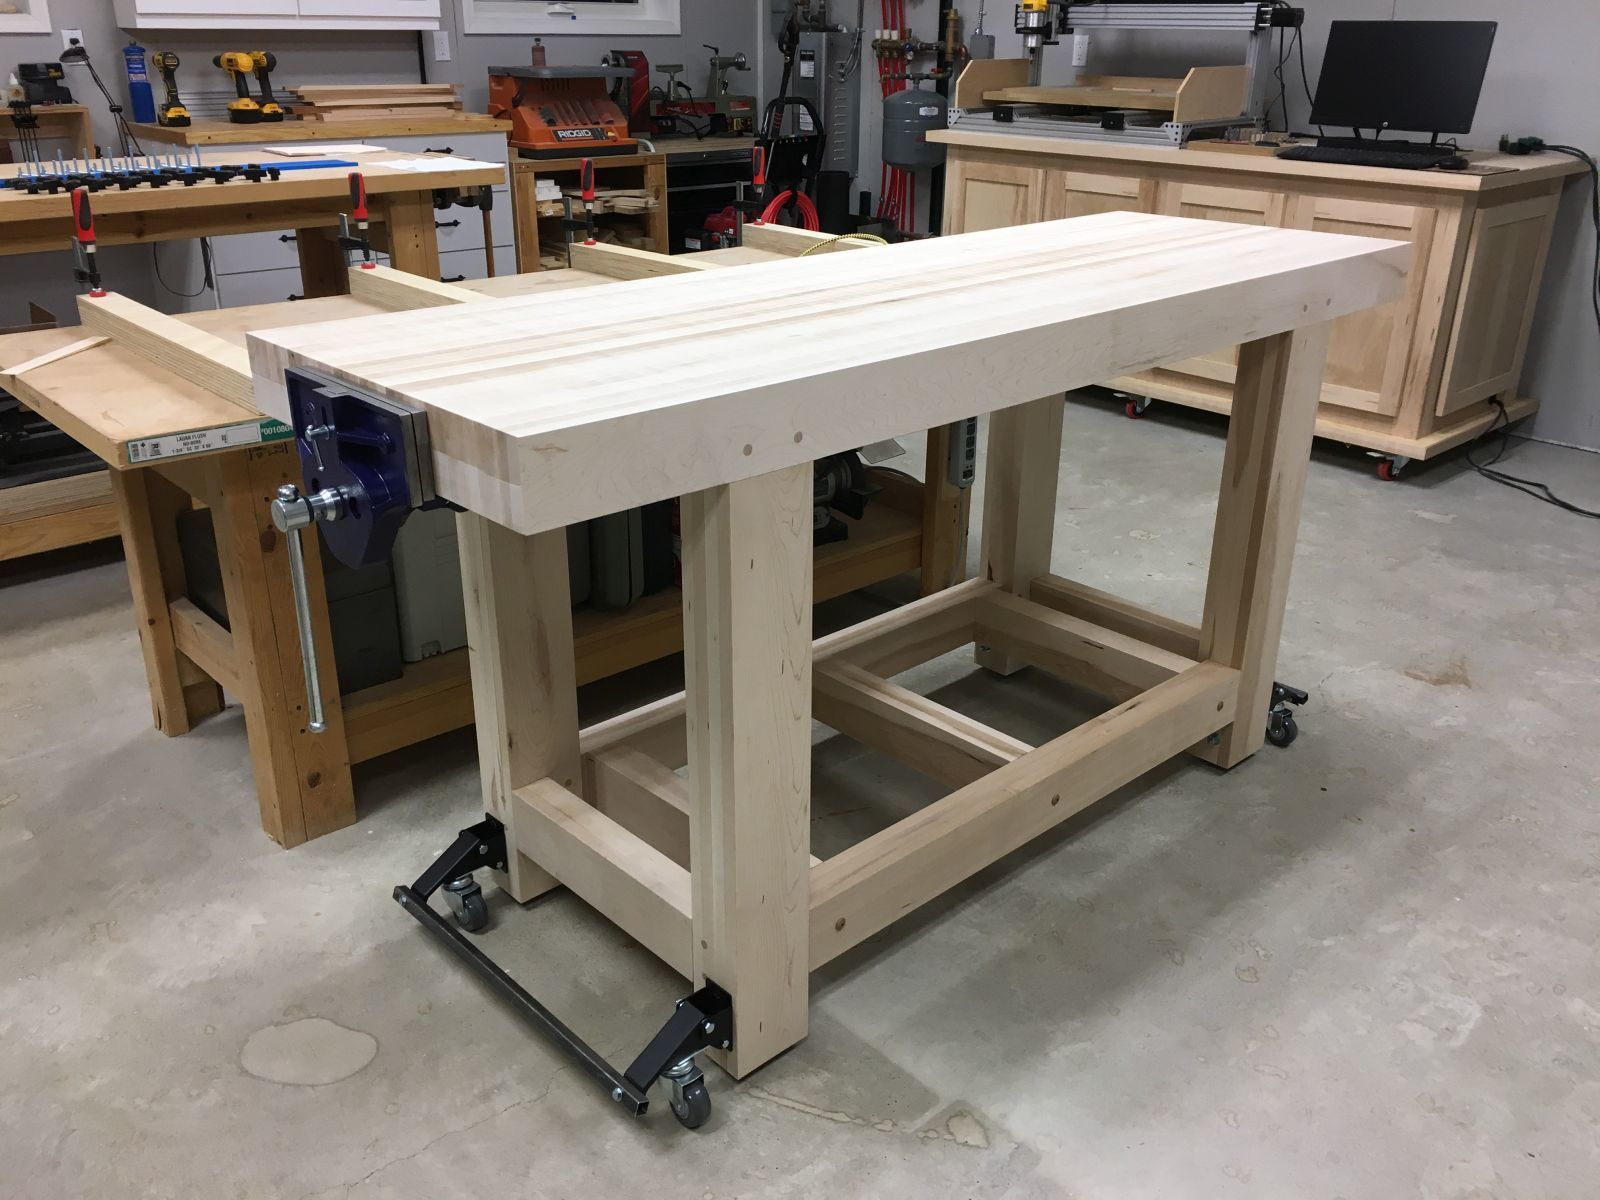 Rockler Workbench Casters, 4 Pack Workbench Build in